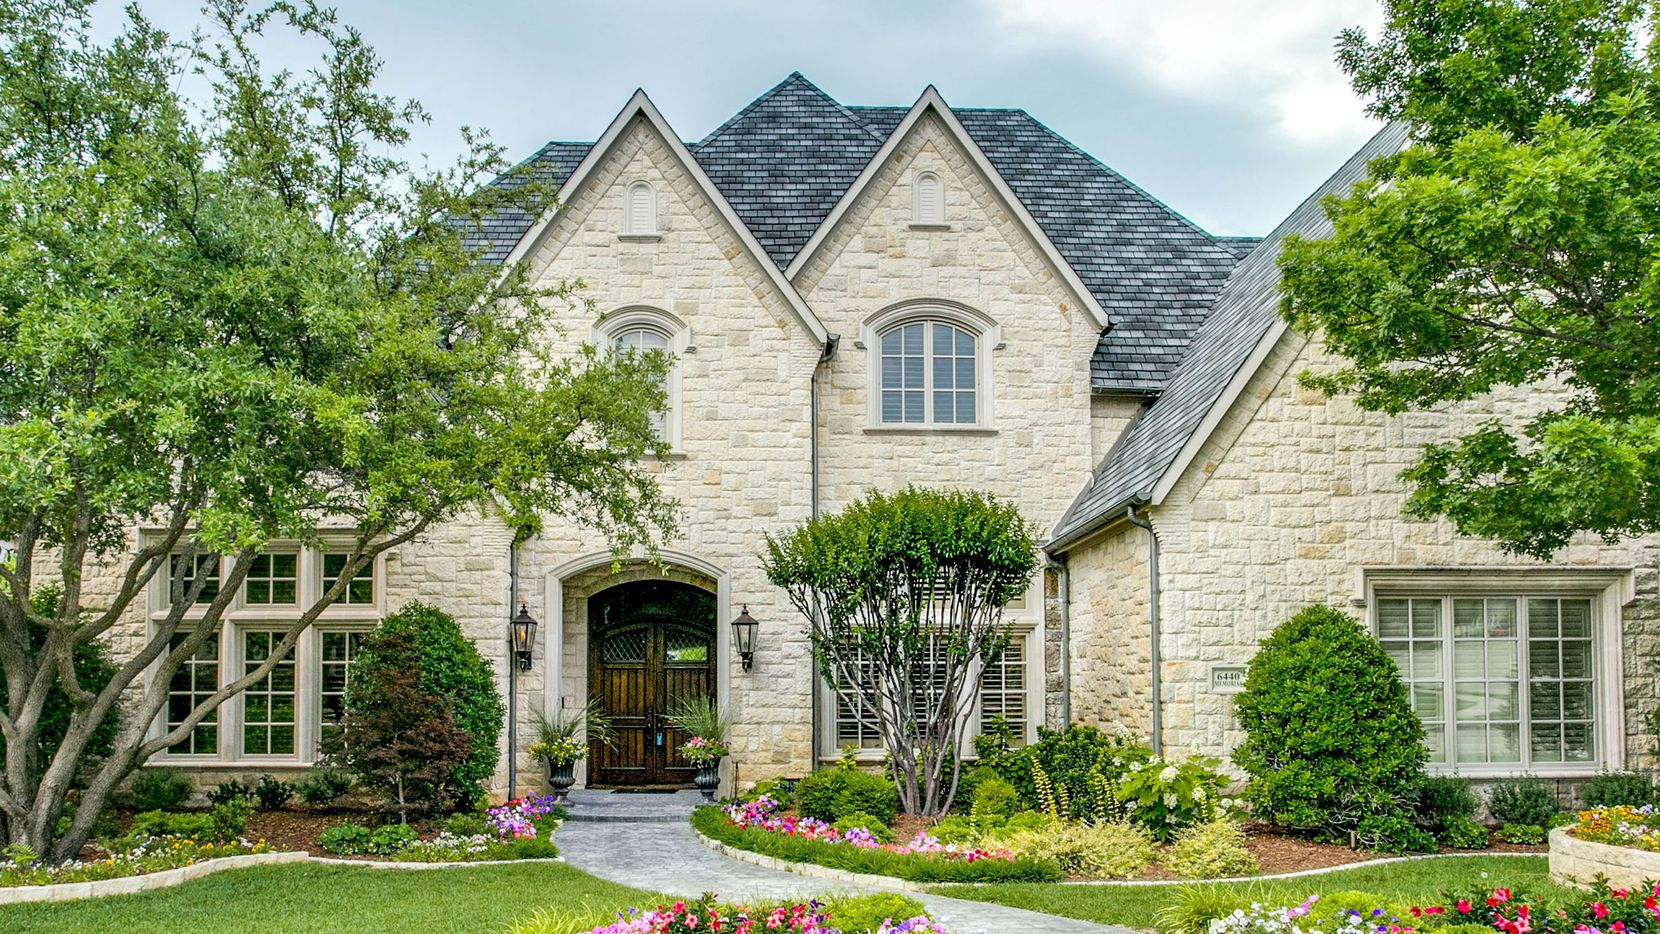 Offered for $1,688,800, the estate at 6440 Memorial Drive in Frisco backs to a greenbelt and creek.